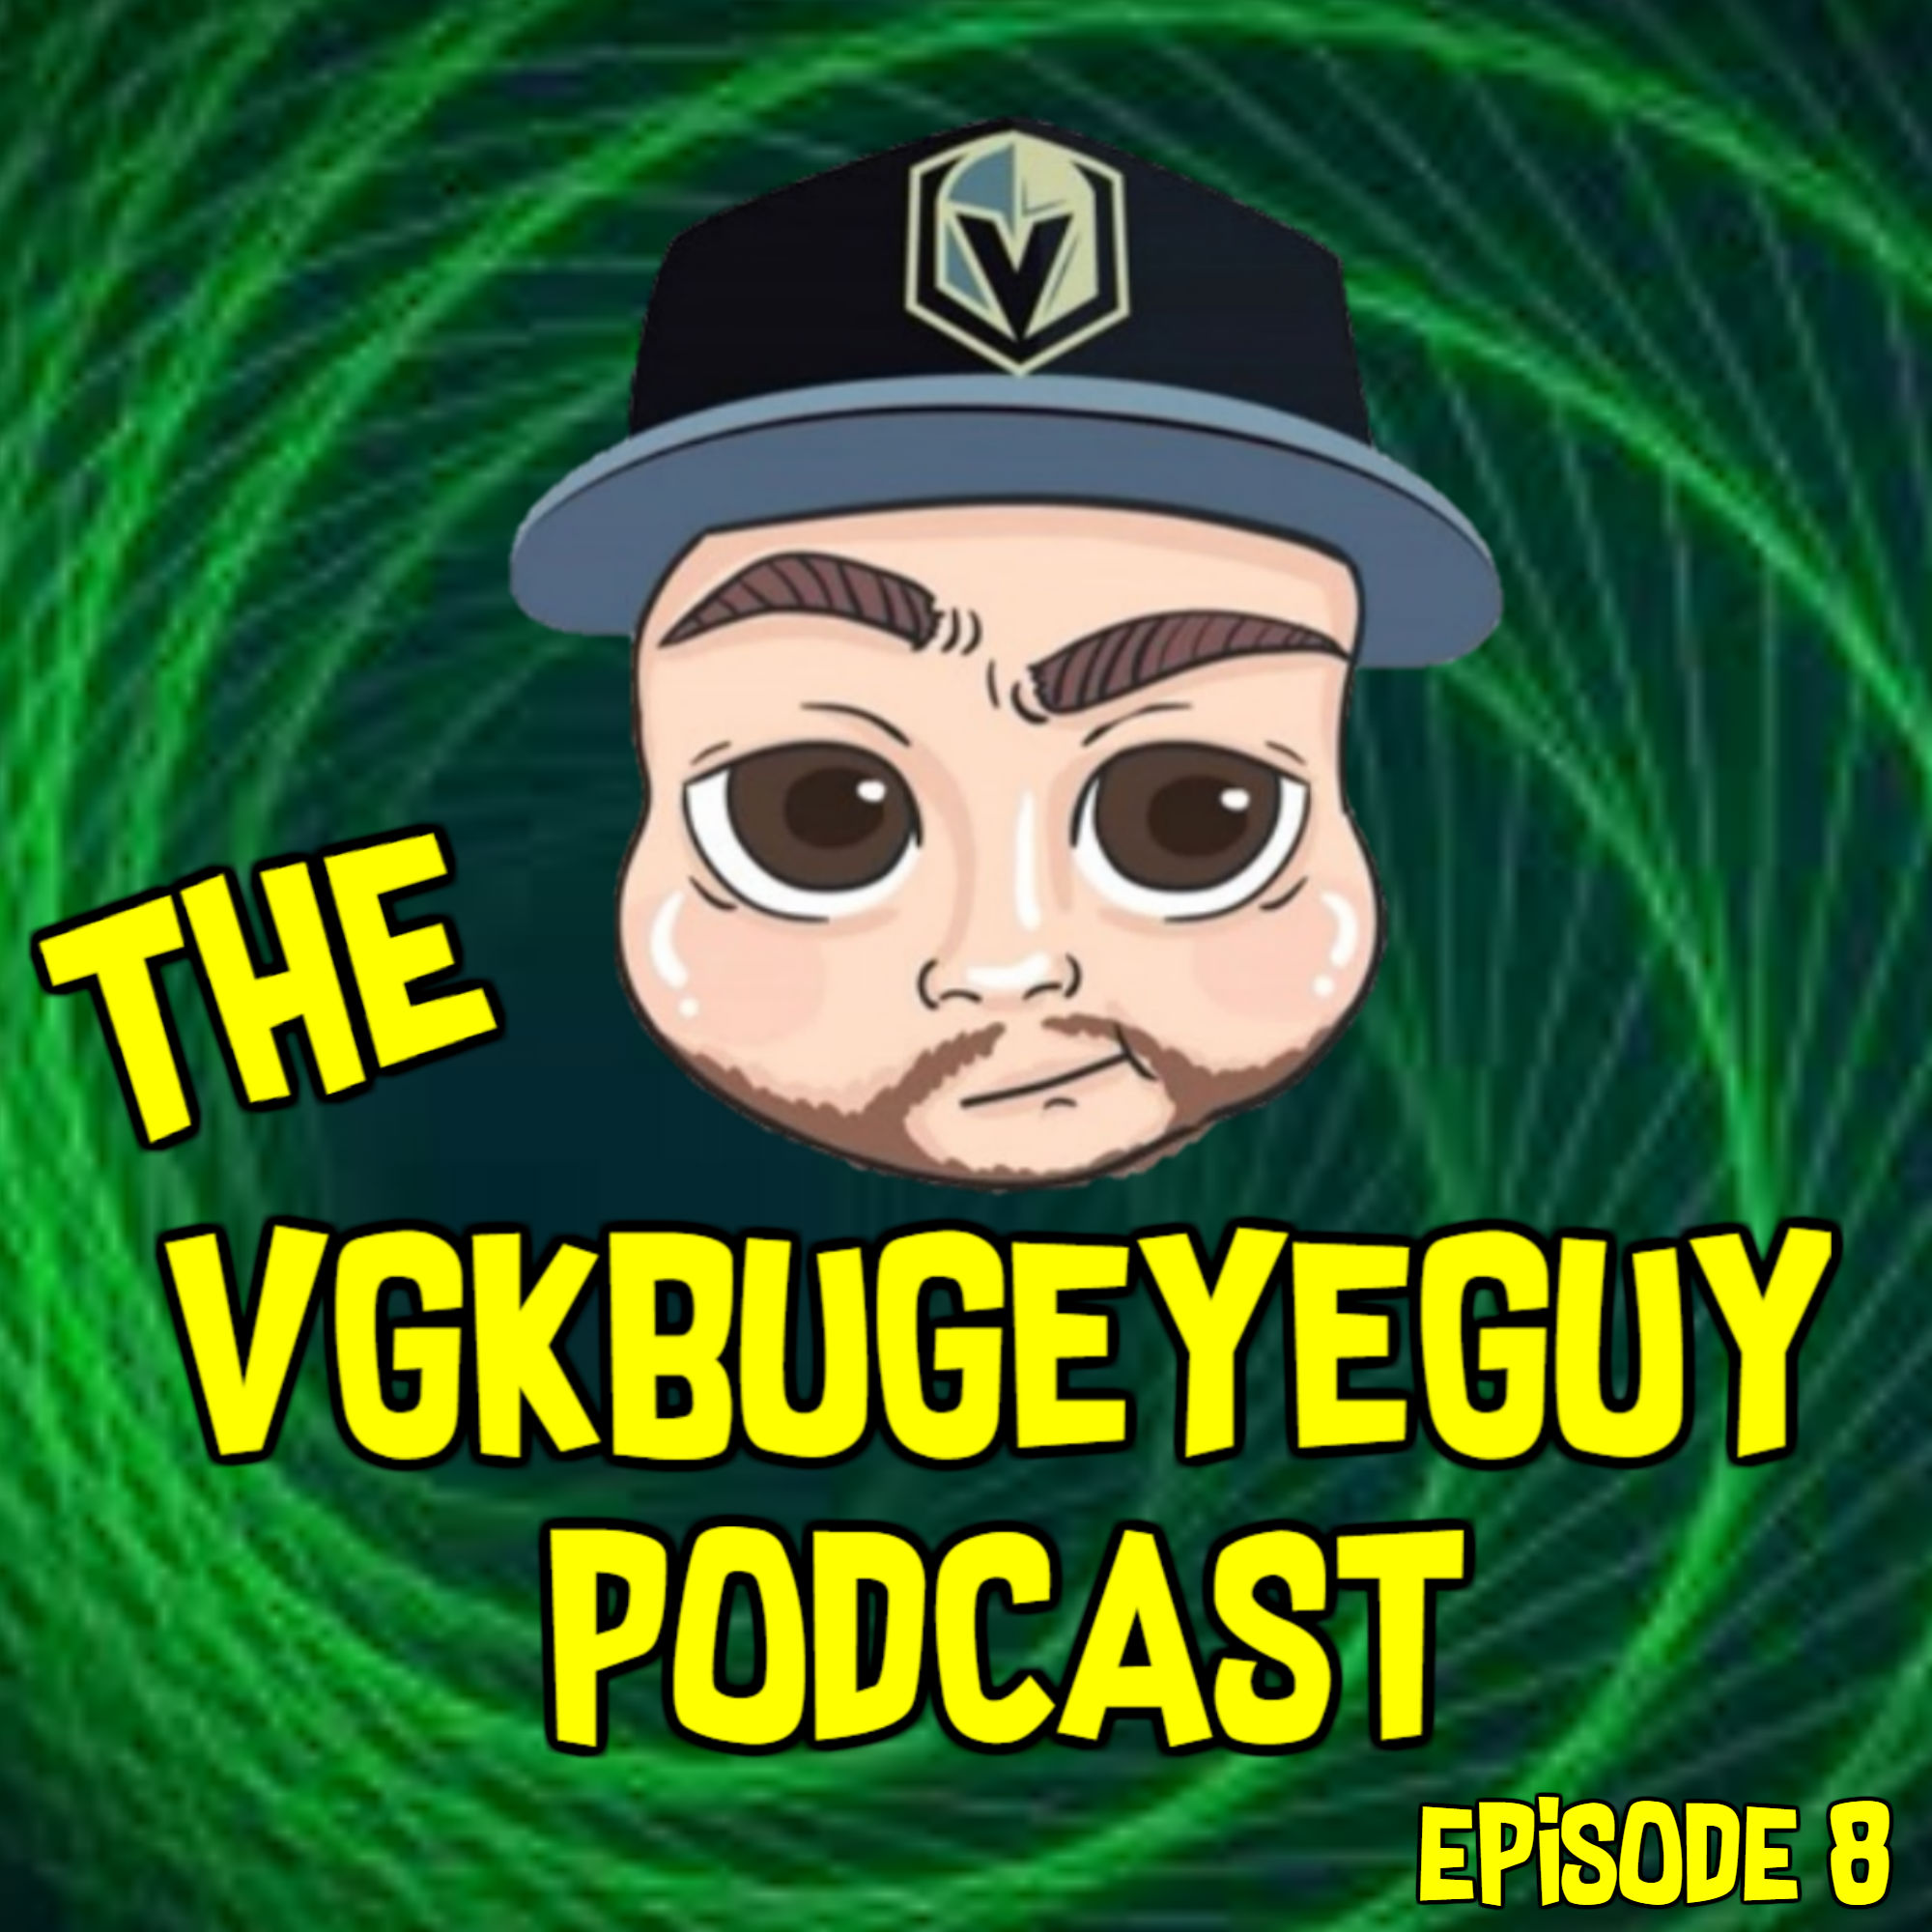 The VGKbugeyeGuy Podcast Episode 8